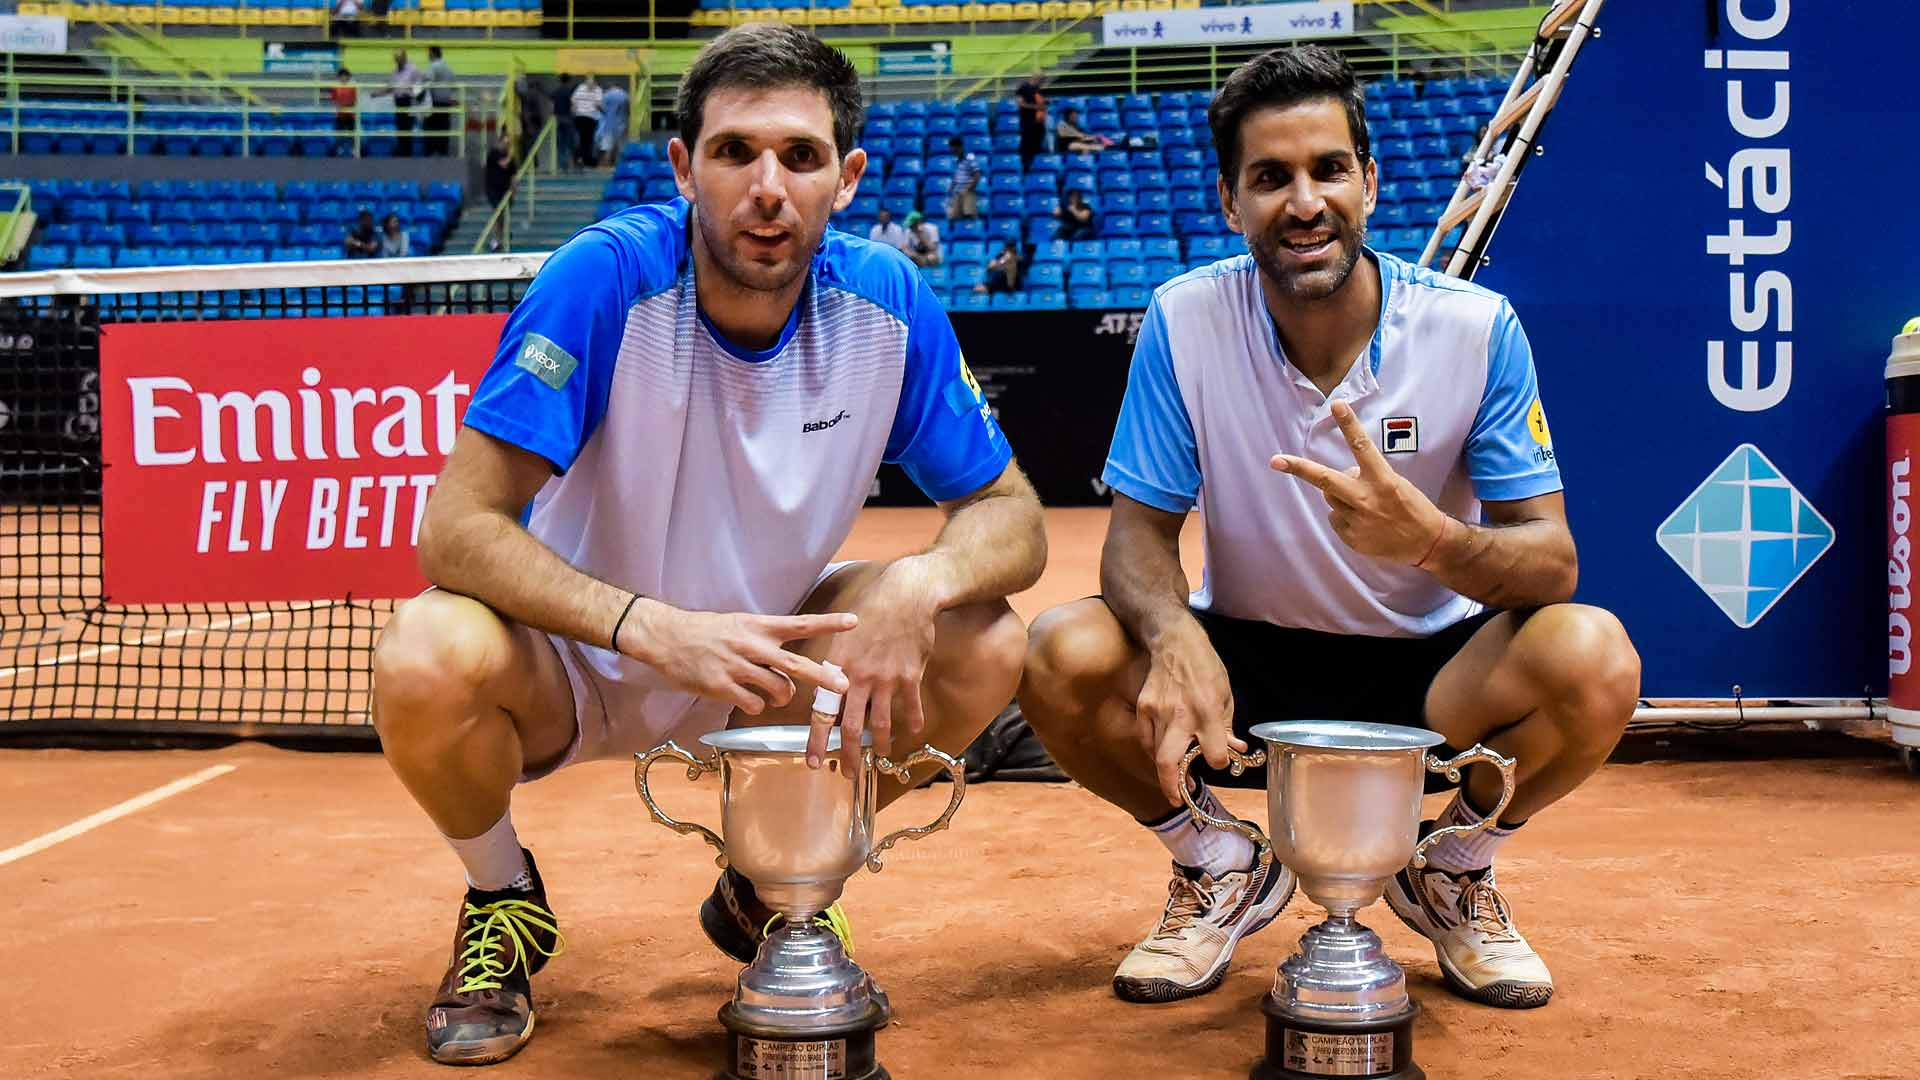 Federico Delbonis and Maximo Gonzalez hold their Brasil Open trophies.